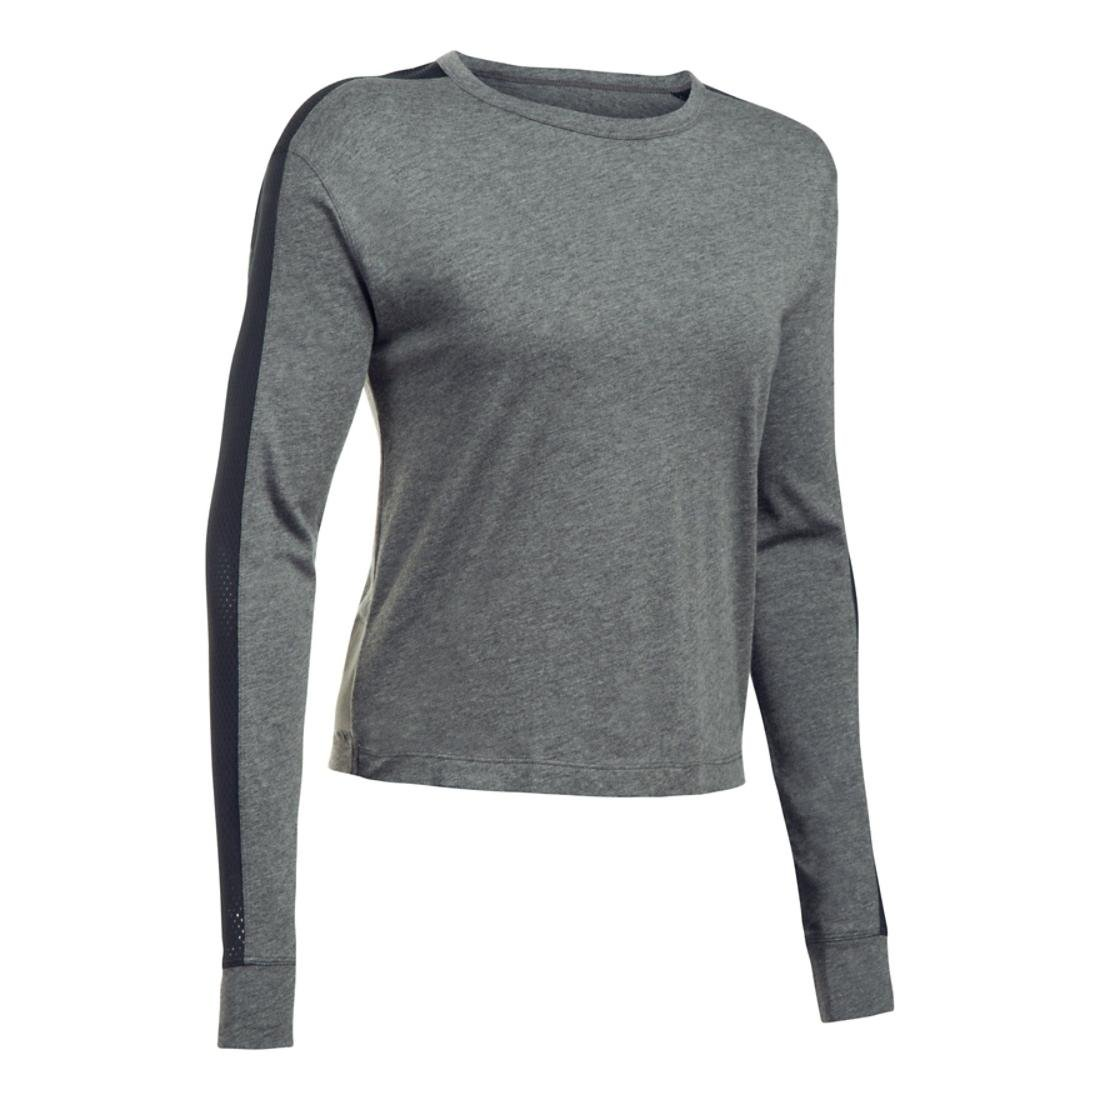 Under Armour Womens Favorite Mesh Graphic Long Sleeve Top Under Armour Apparel 1308216